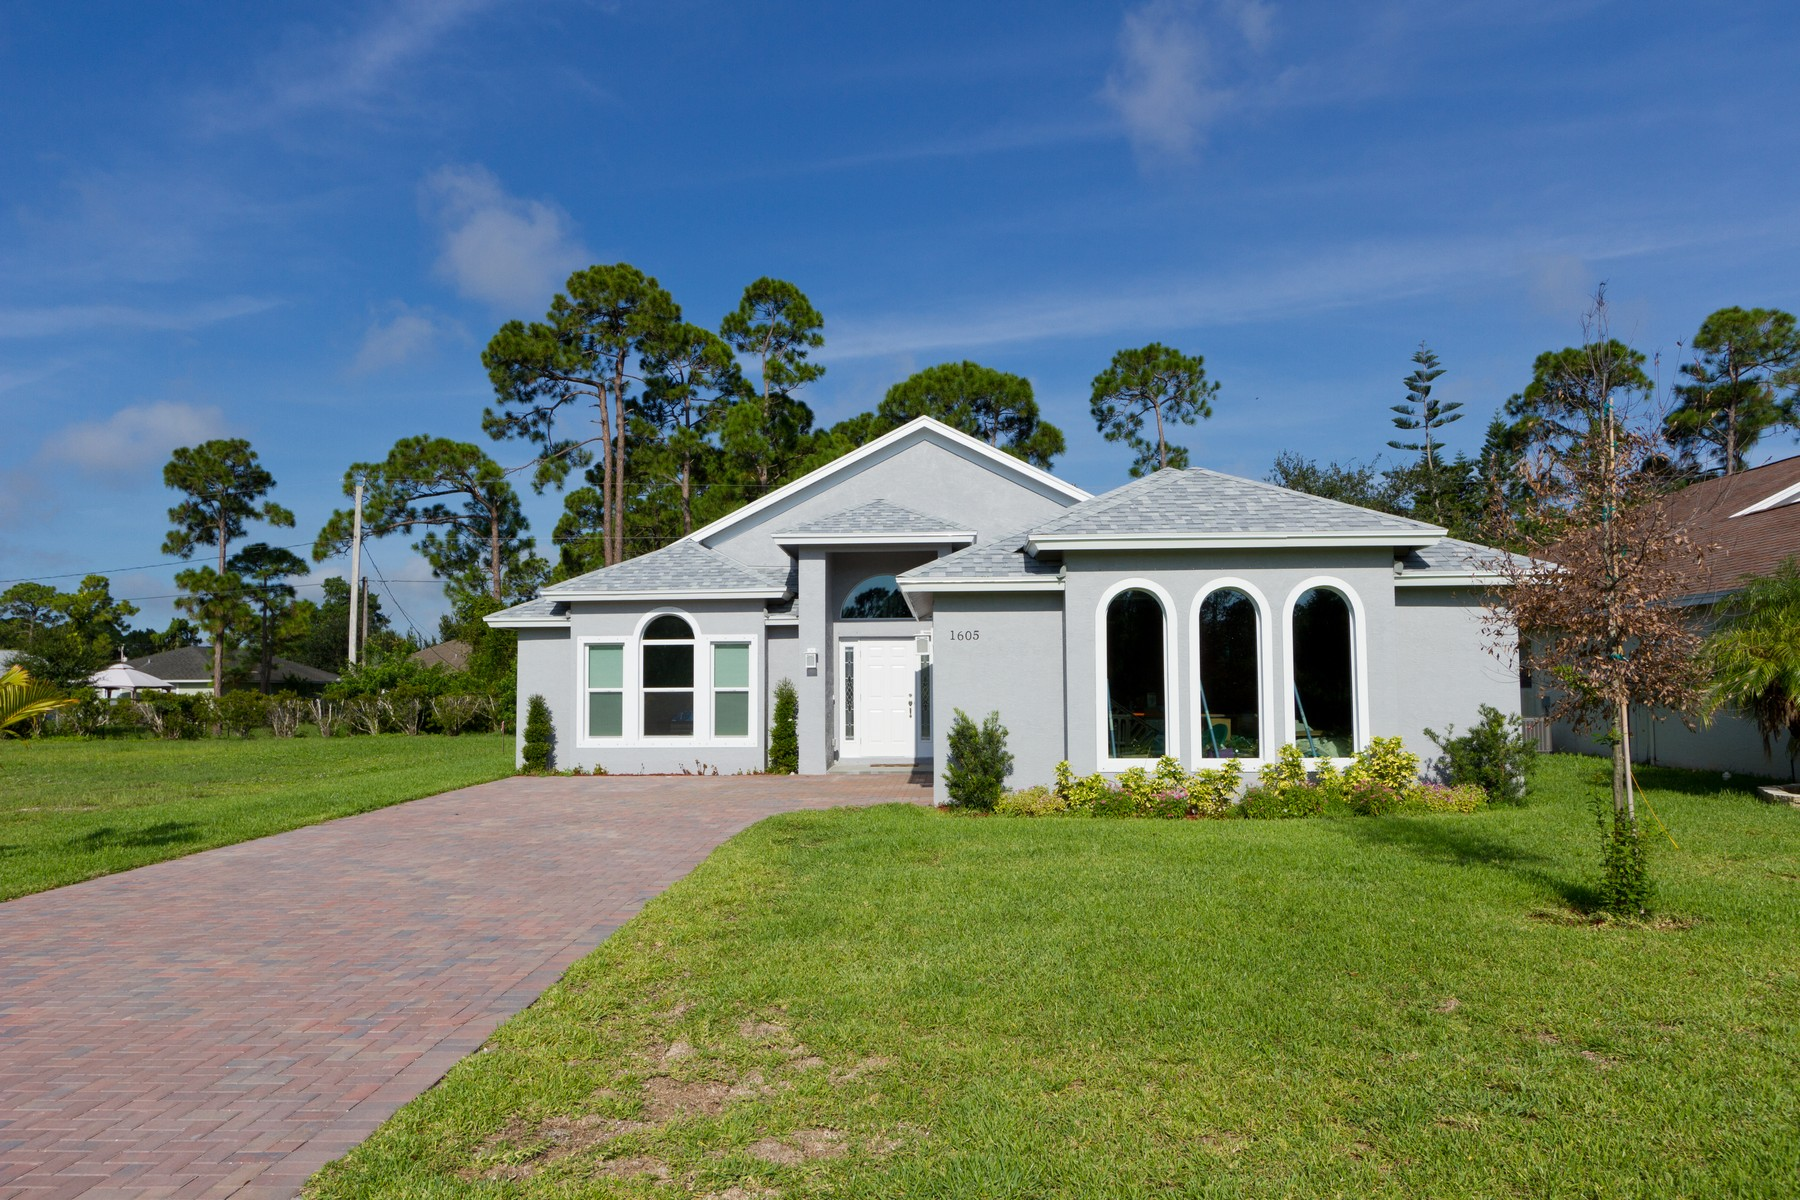 Property for Sale at Tucked Away on a Quiet Cul-De-Sac. 1615 16th Court SW Vero Beach, Florida 32962 United States